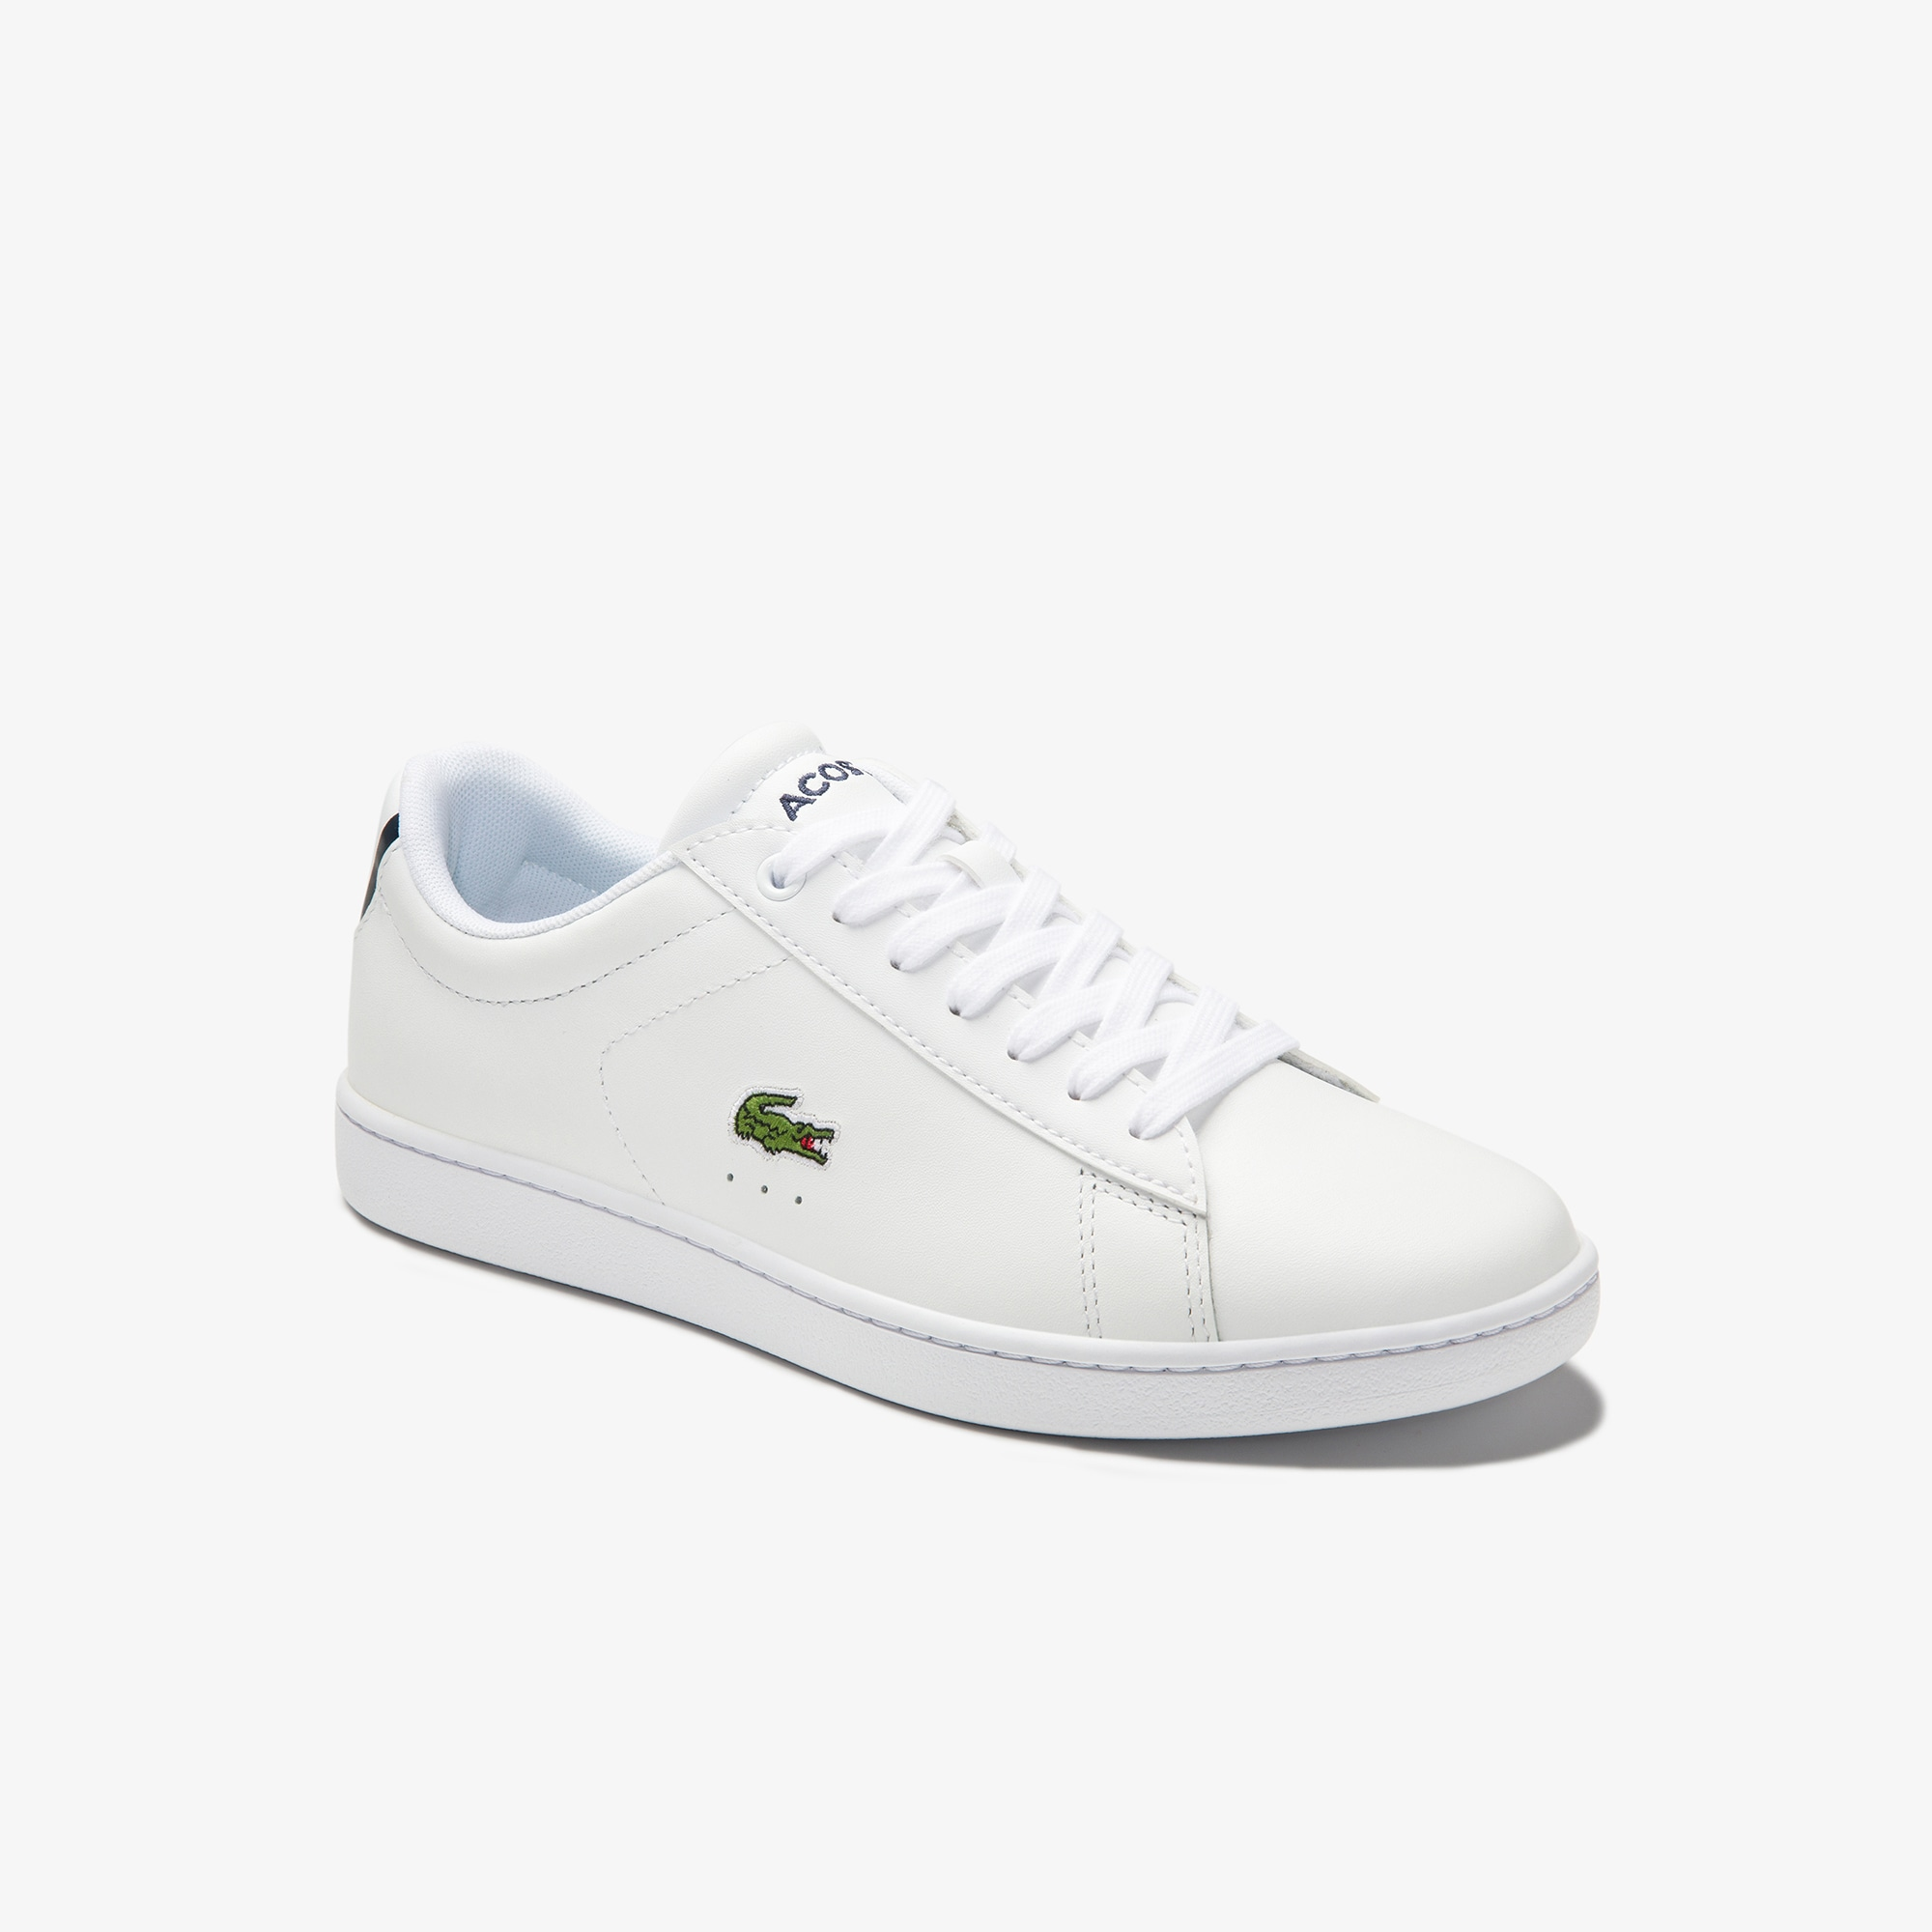 82344298876bd Women s Carnaby Evo BL Leather Sneakers